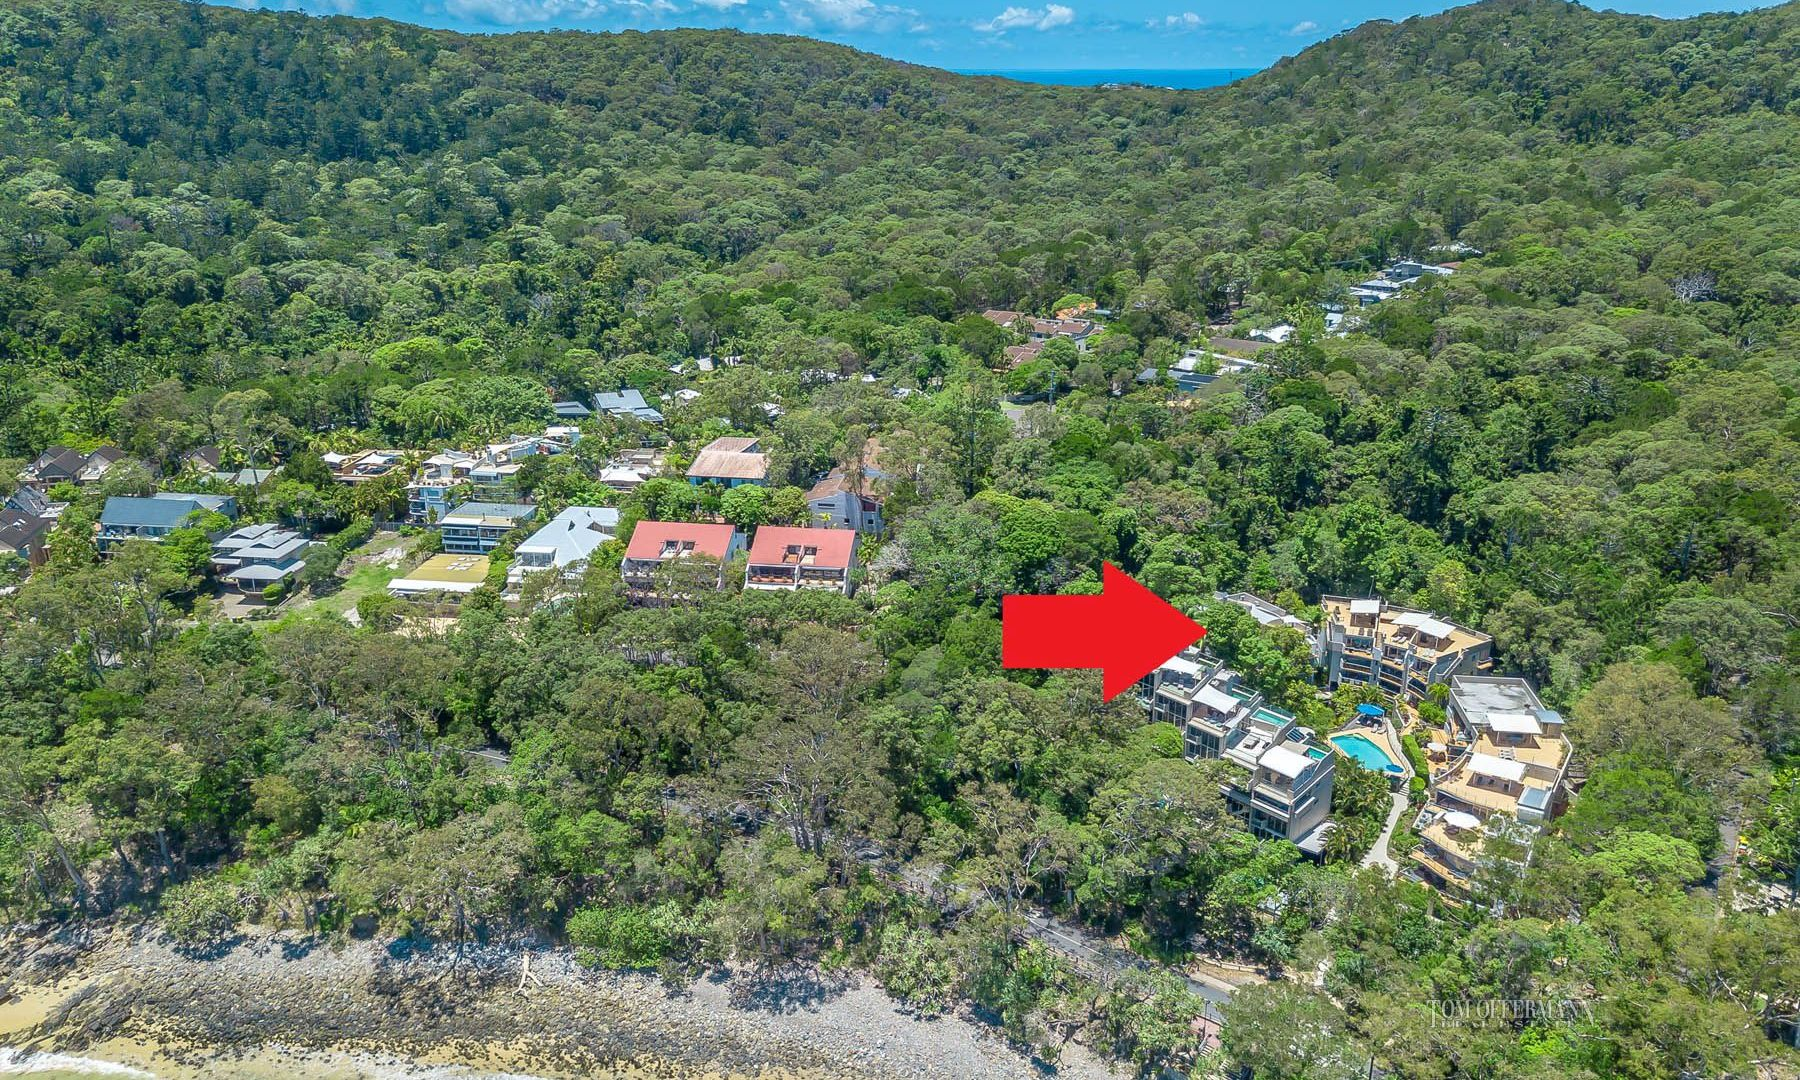 23/24 Little Cove Rd, Noosa Heads QLD 4567, Image 1